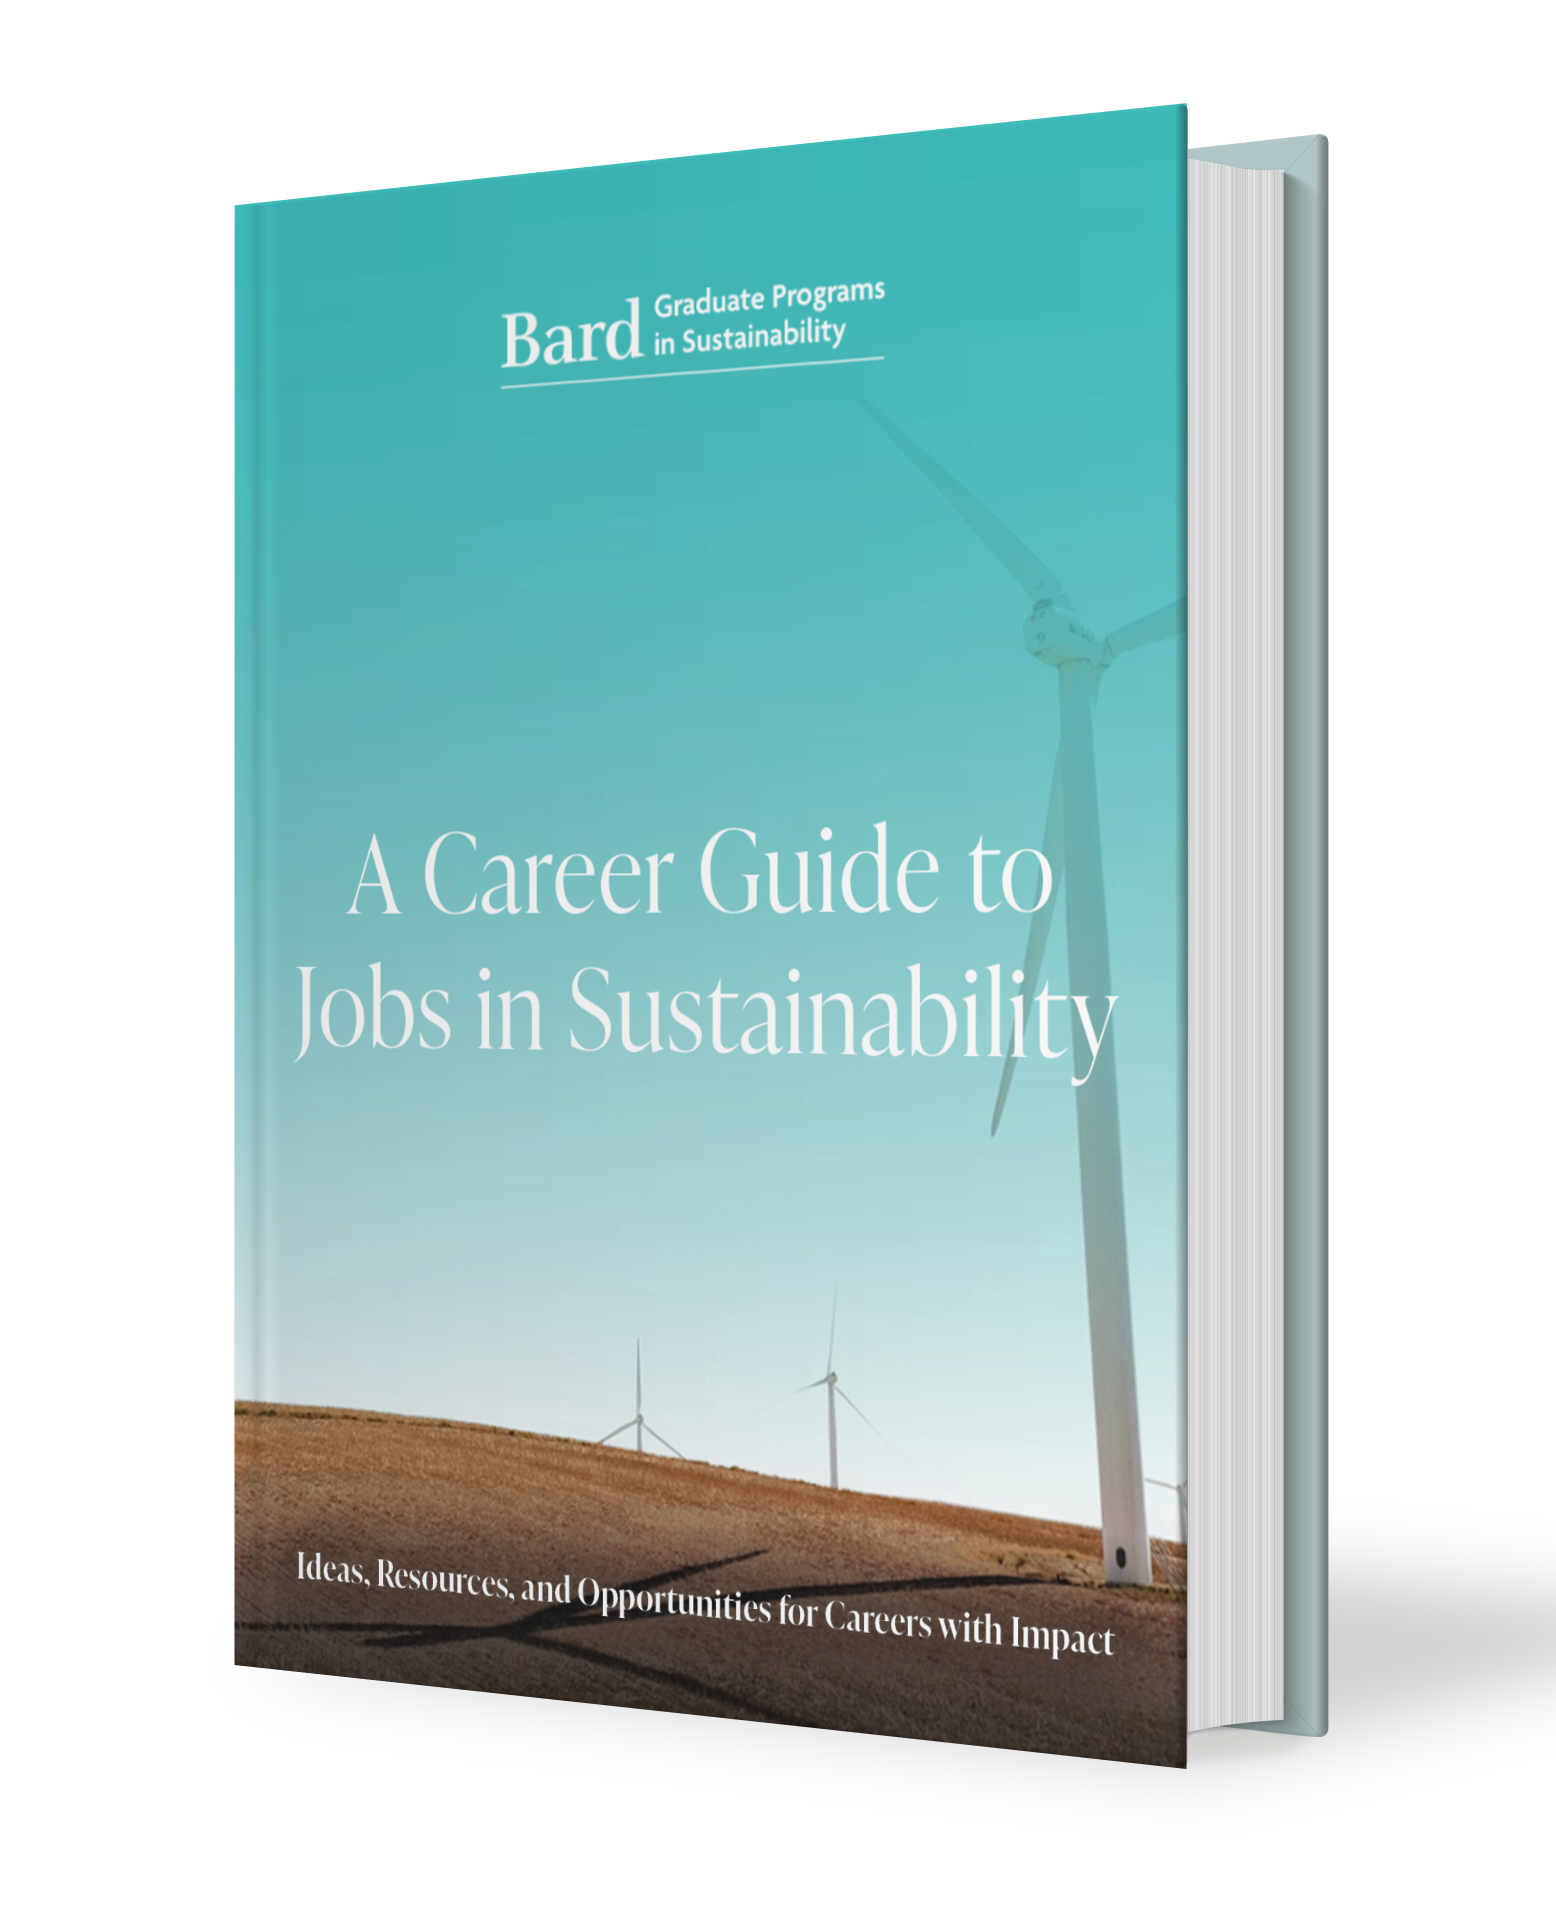 A Career Guide to Jobs in Sustainability